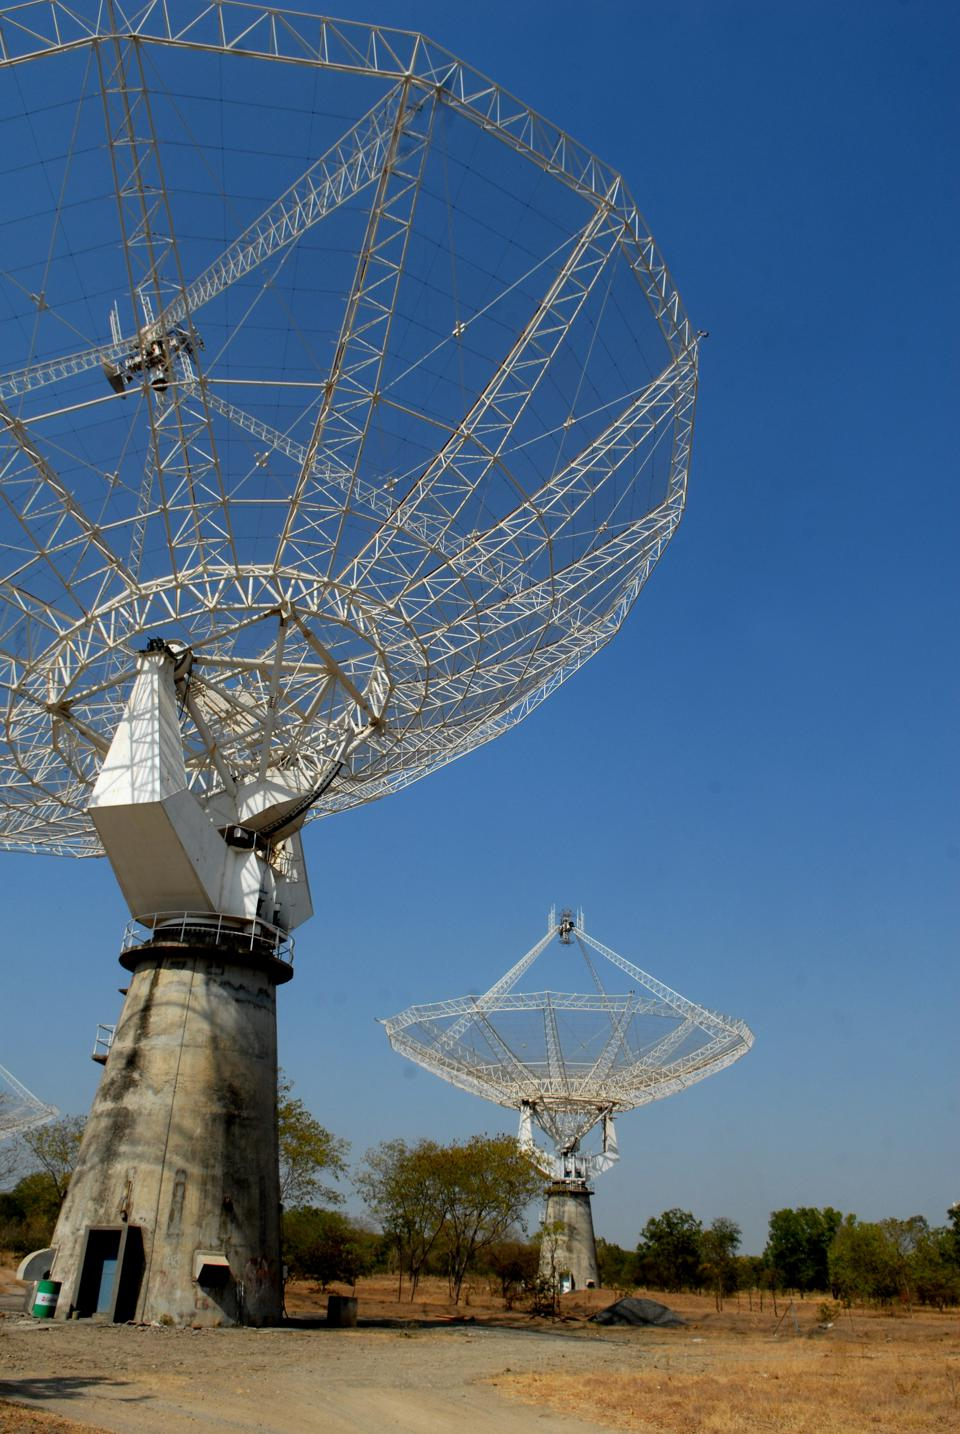 The GMRT near Pune in India has 30 dishes that operate individually as telescopes, and collectively, which make the GMRT the world's largest radio telescope in the 150-1,500 Mhz frequency. (Photo by Hemant Mishra/Mint via Getty Images)